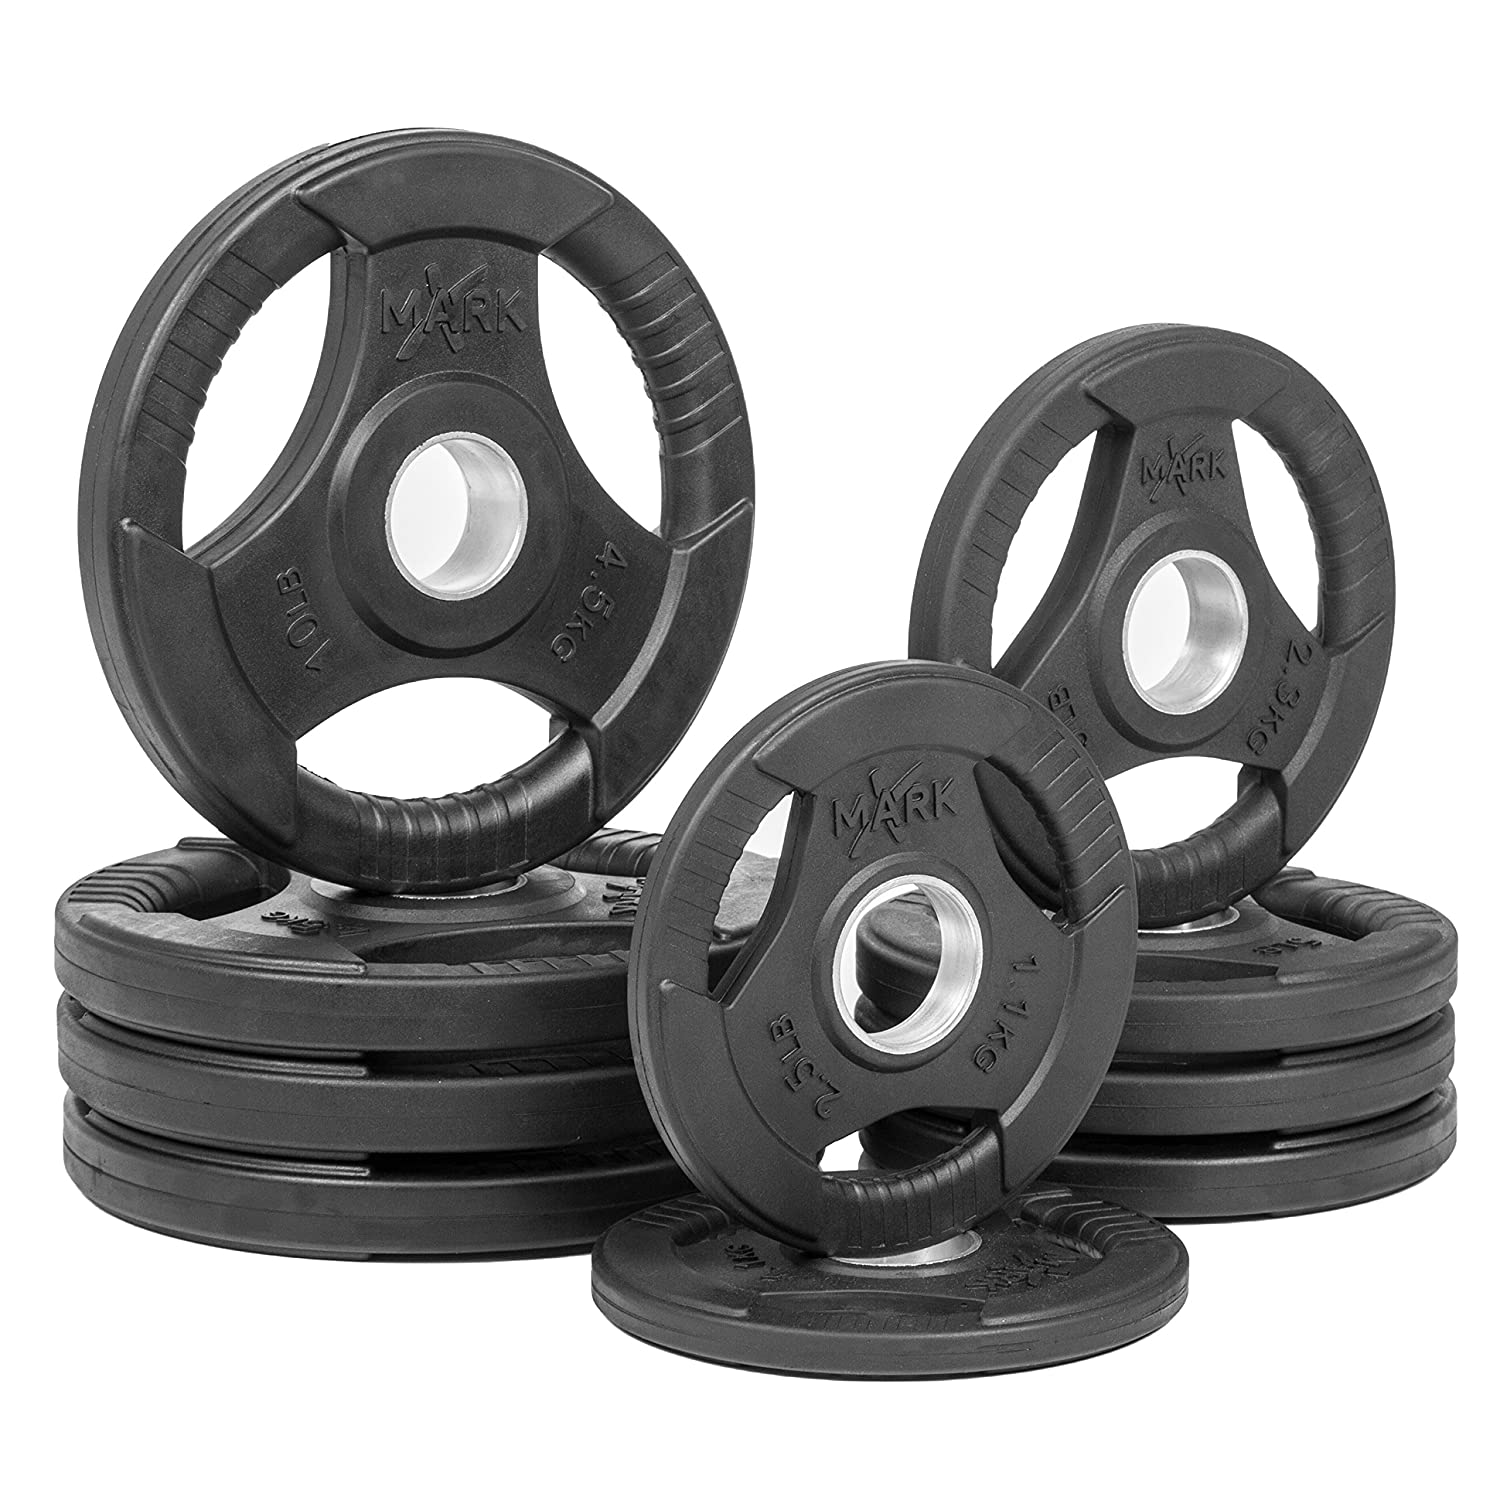 Amazon.com  XMark Fitness XM-3377-BAL-45 Rubber Coated Olympic Plates  Sports u0026 Outdoors  sc 1 st  Amazon.com : rubber plate weight set - Pezcame.Com